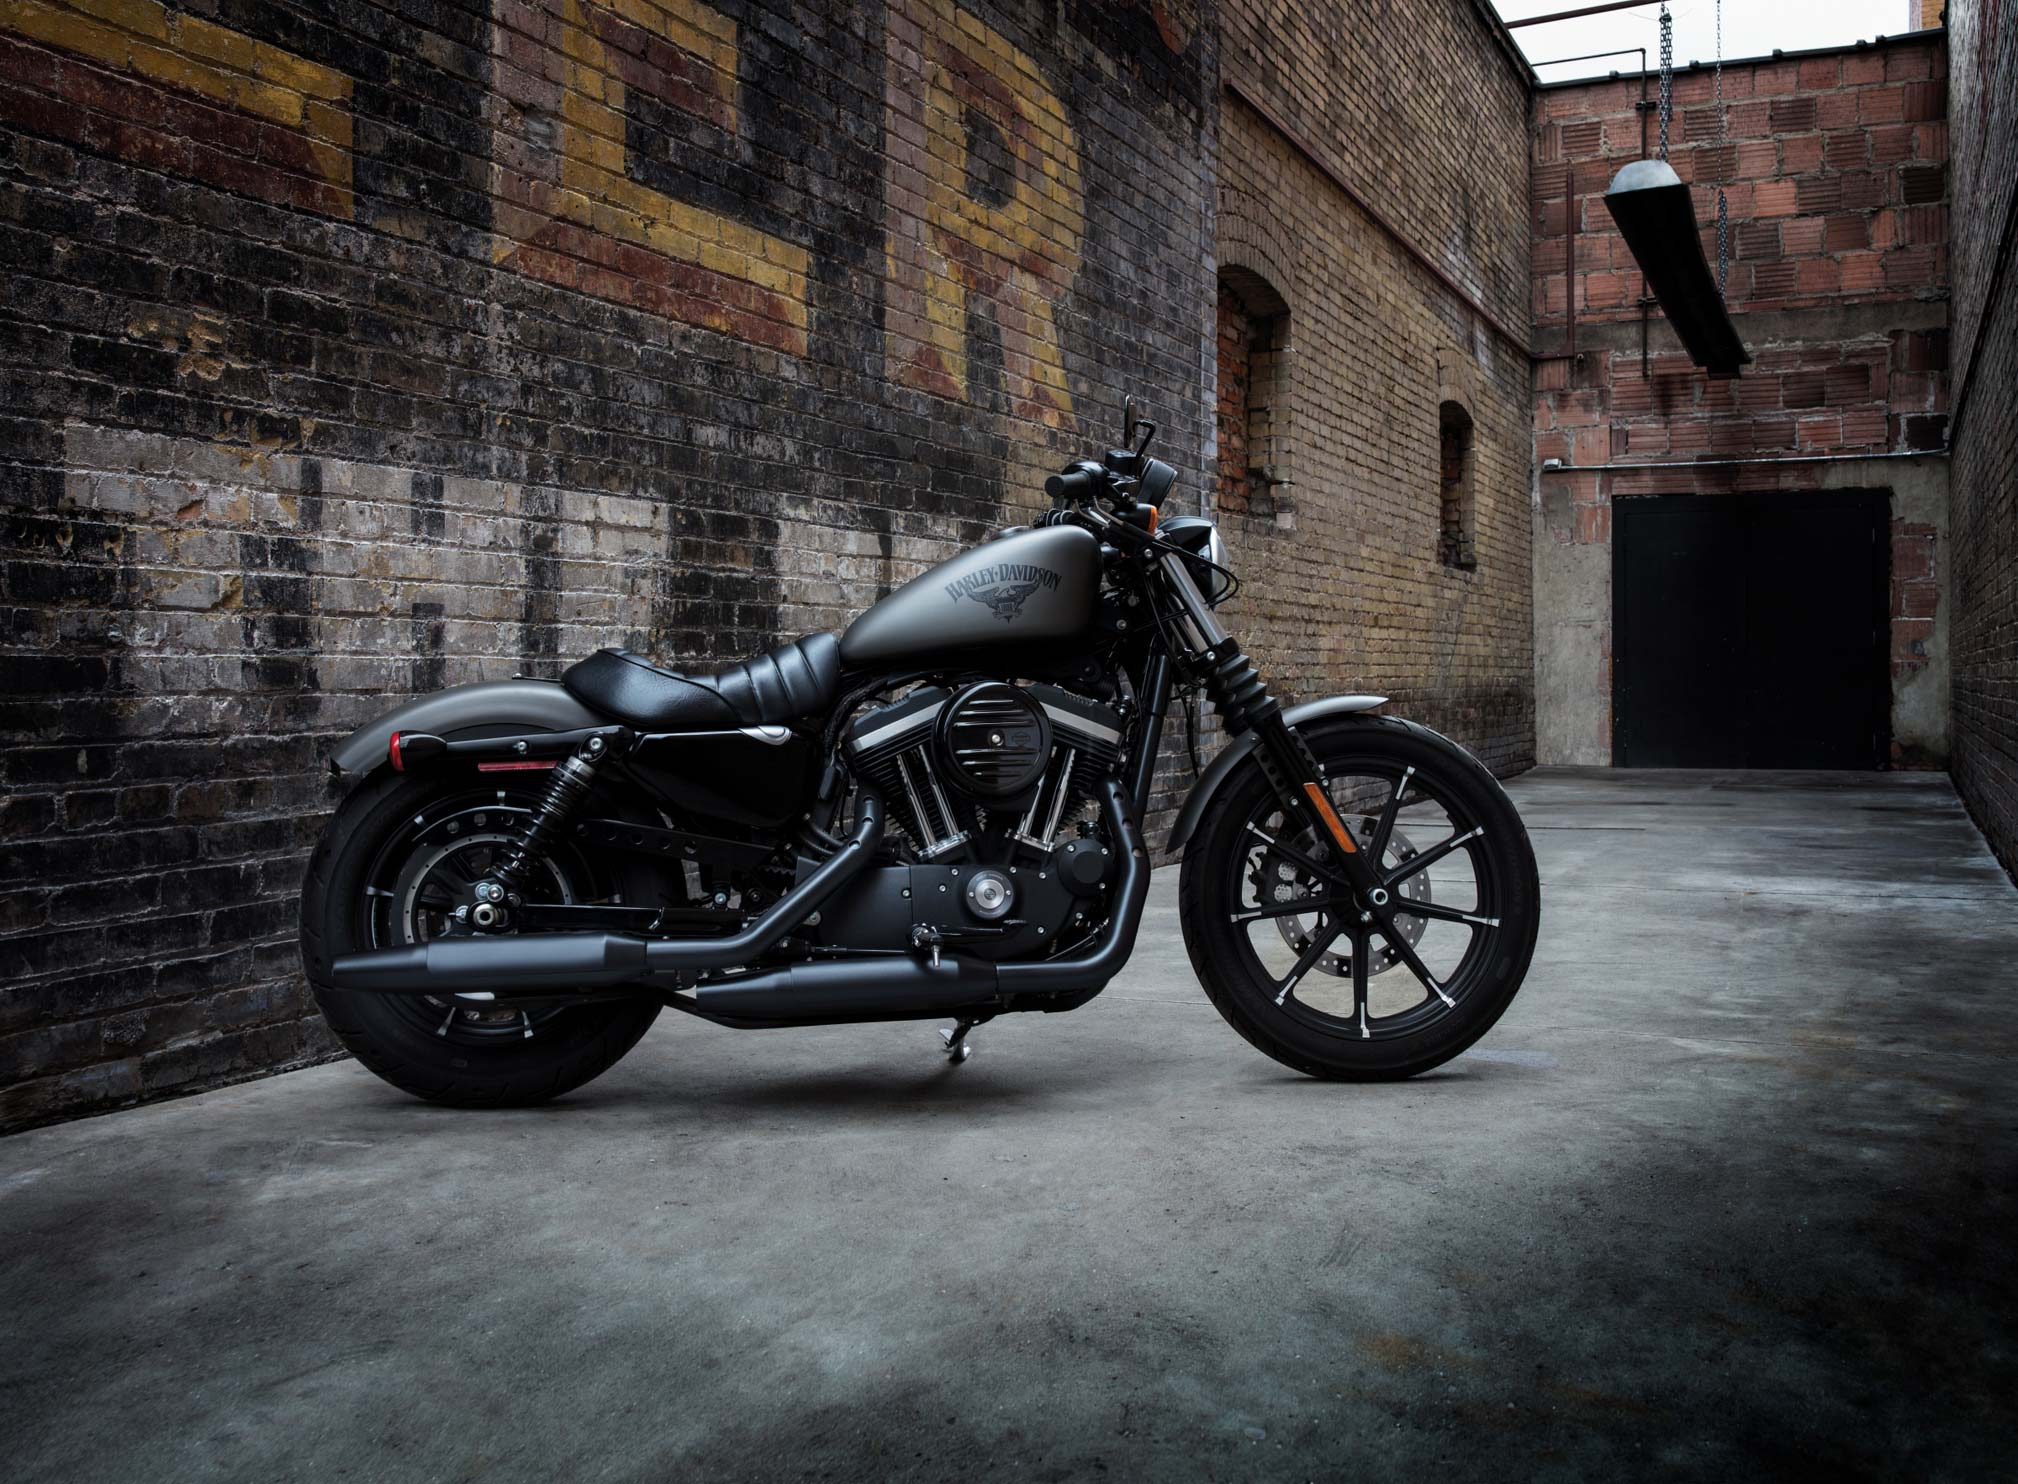 2018 Harley-Davidson Iron 883 Review - TotalMotorcycle